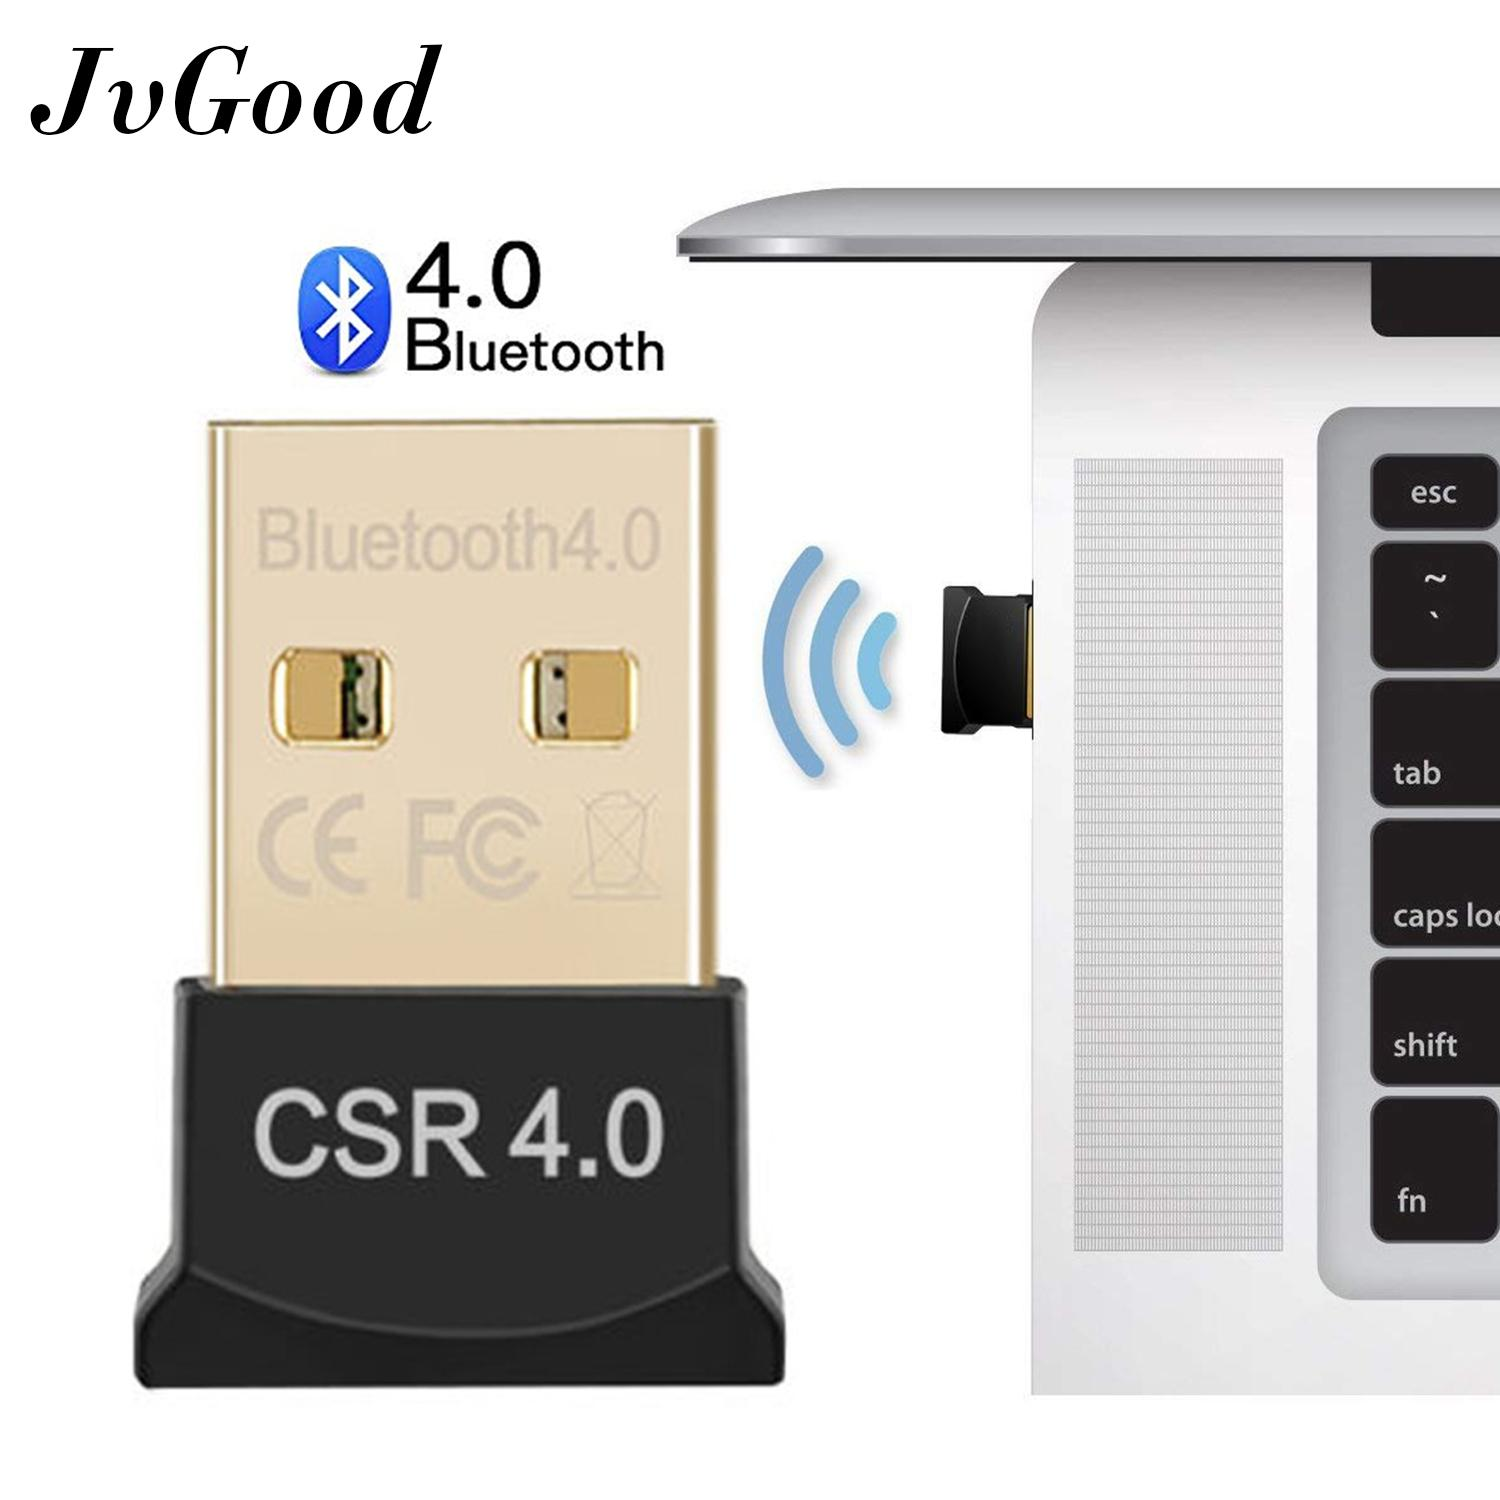 JvGood USB Bluetooth Adapter for PC Wireless Dongle Mini Bluetooth USB Dongle Dual Mode Bluetooth 4.0